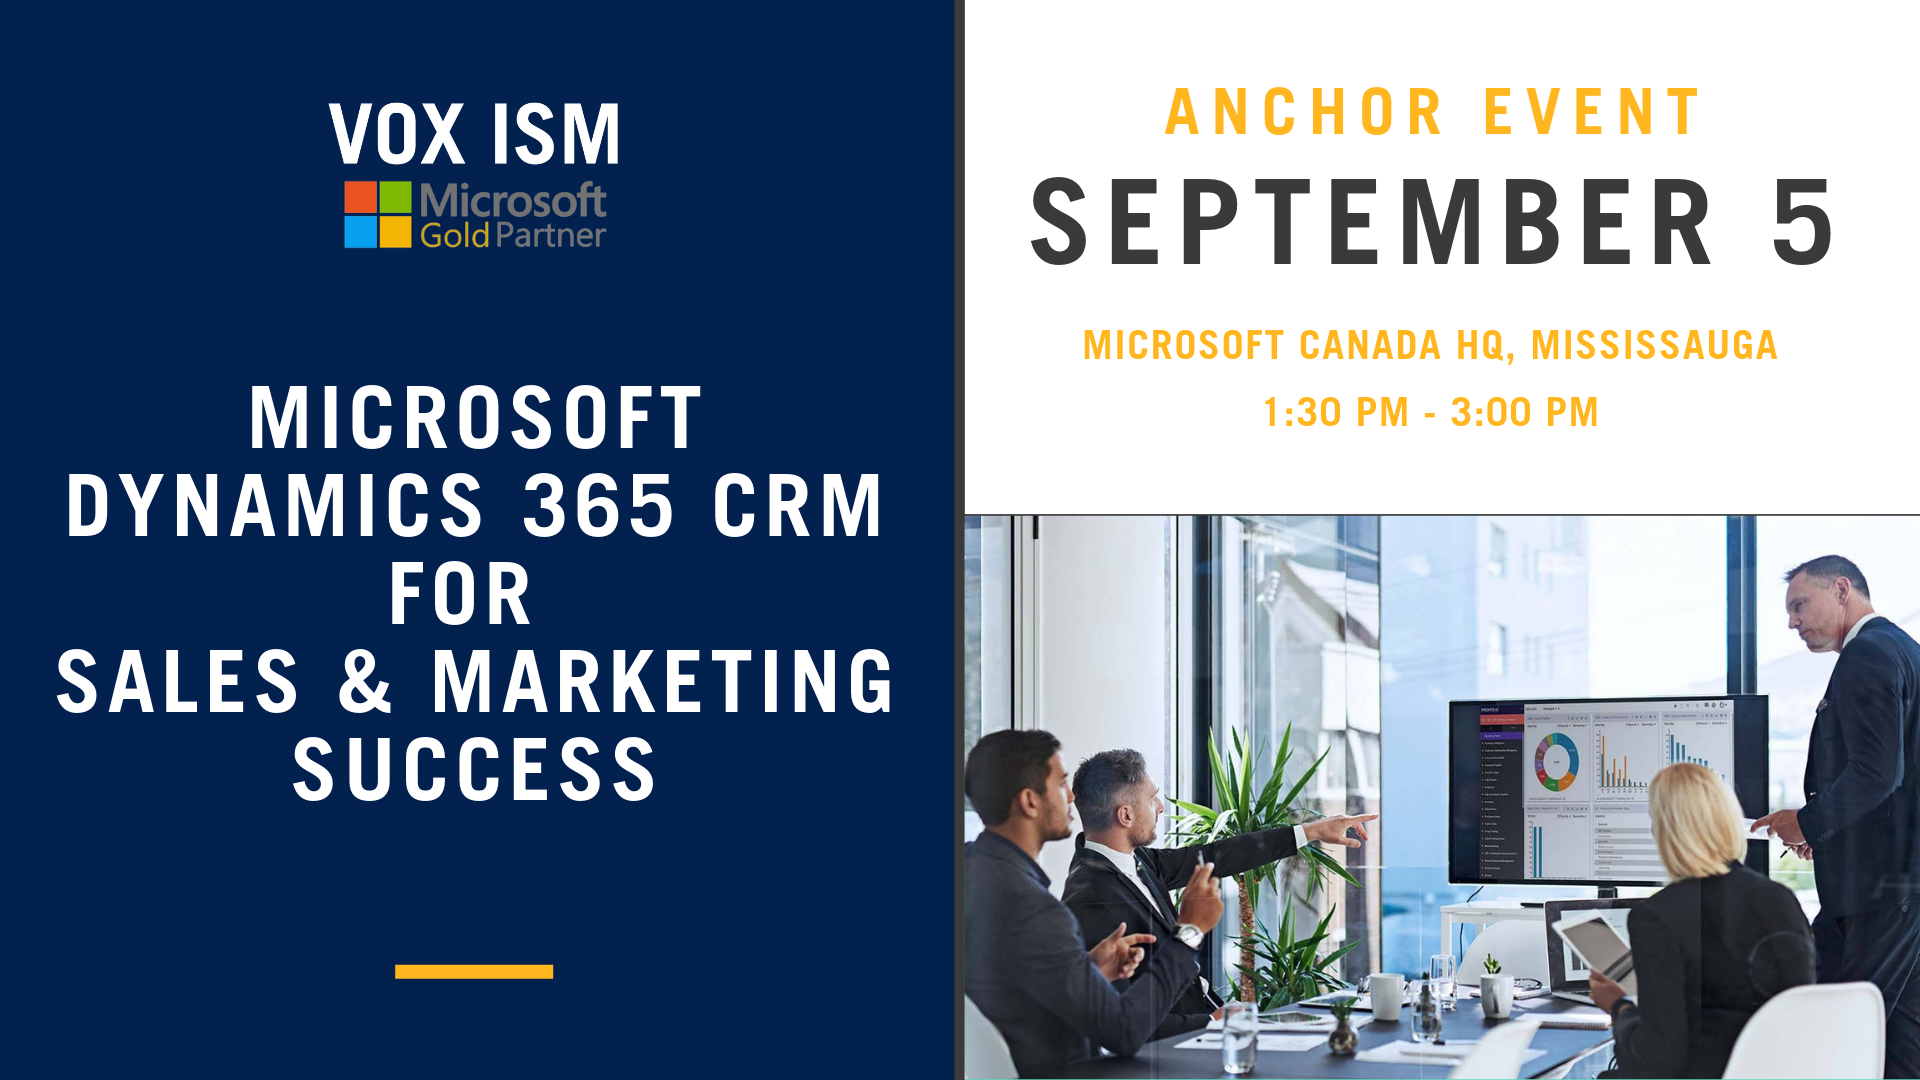 Microsoft Dynamics 365 CRM For Sales & Marketing Success - September 5 - Anchor Event - VOX ISM